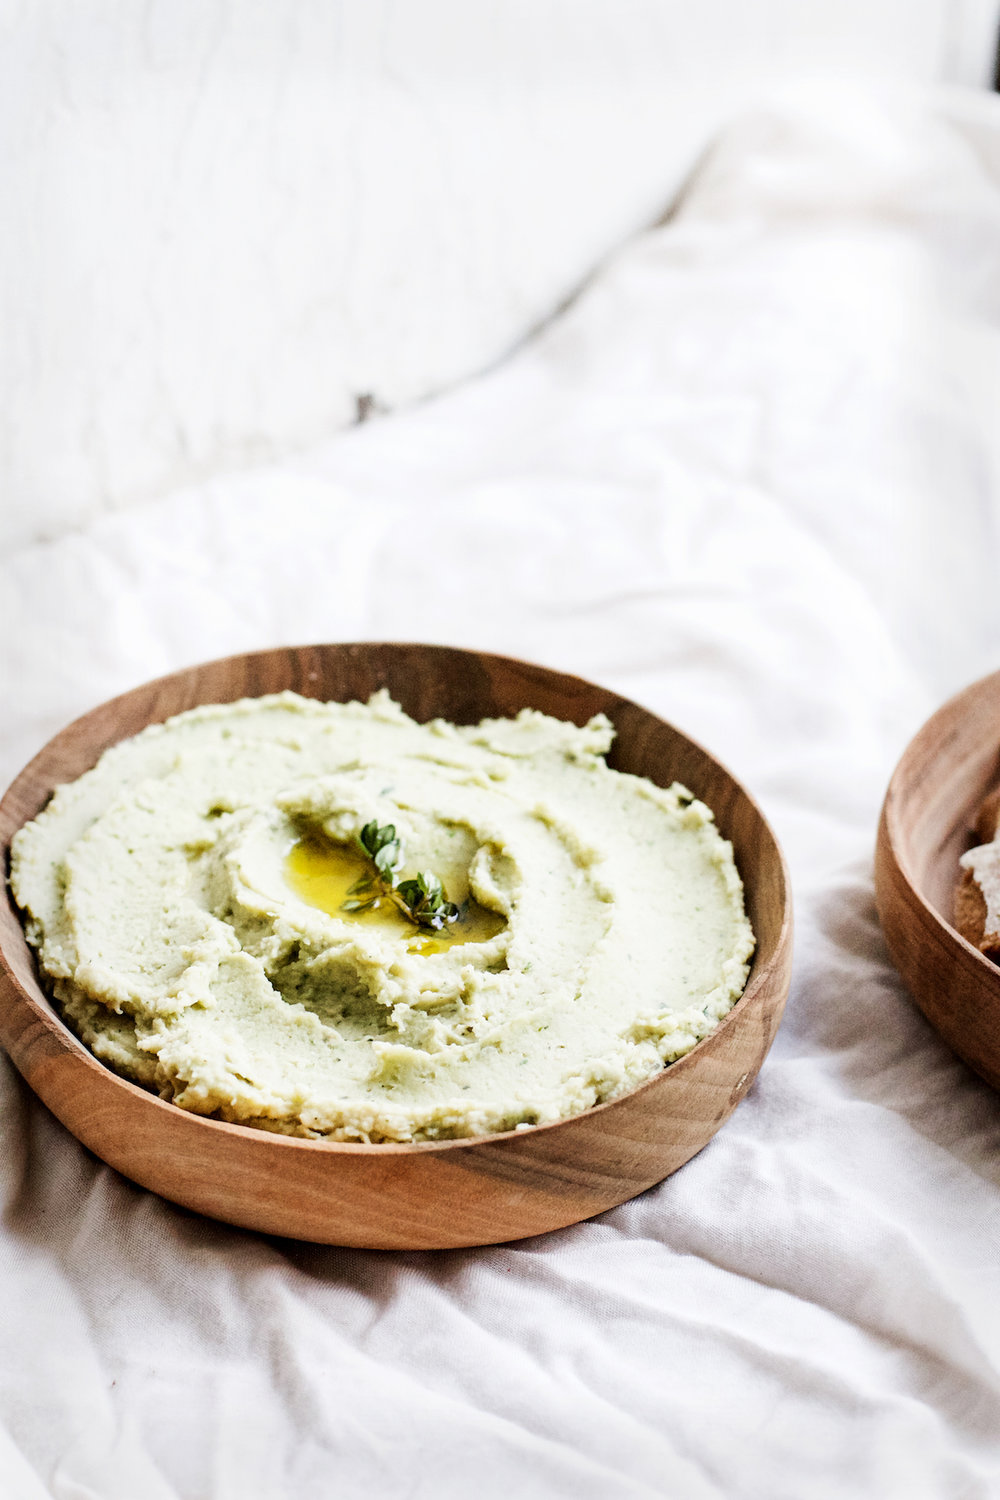 Lemony Garlic Herb White Bean Dip from Pretty Simple Cooking by A Couple Cooks | Ruby Josephine #vegan #prettysimplecooking